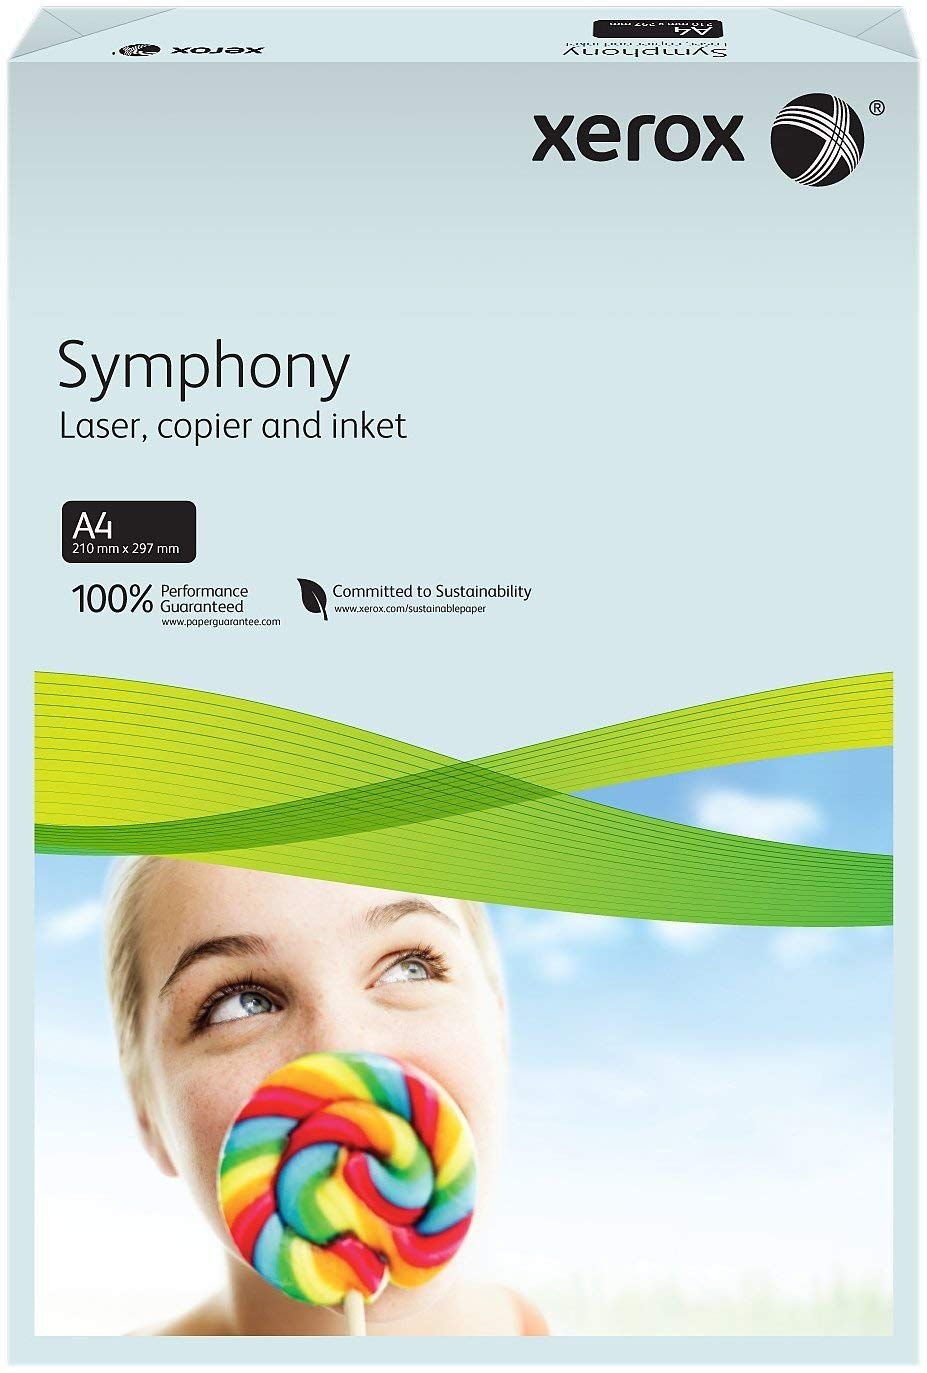 A4 Xerox Symphony Pastel Blue Paper - 80gsm - 210 x 297mm - Pack of 500